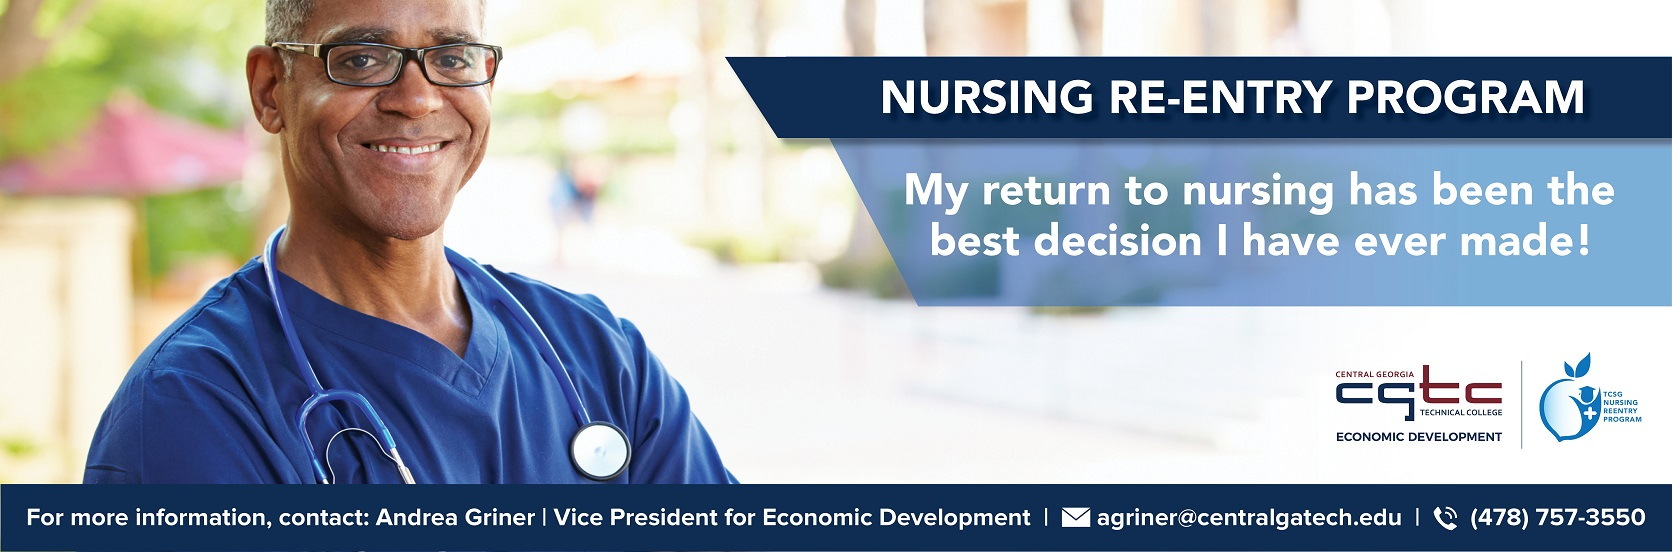 The Economic Development Division is now offering Nurse Re-entry programs. Click to learn more.